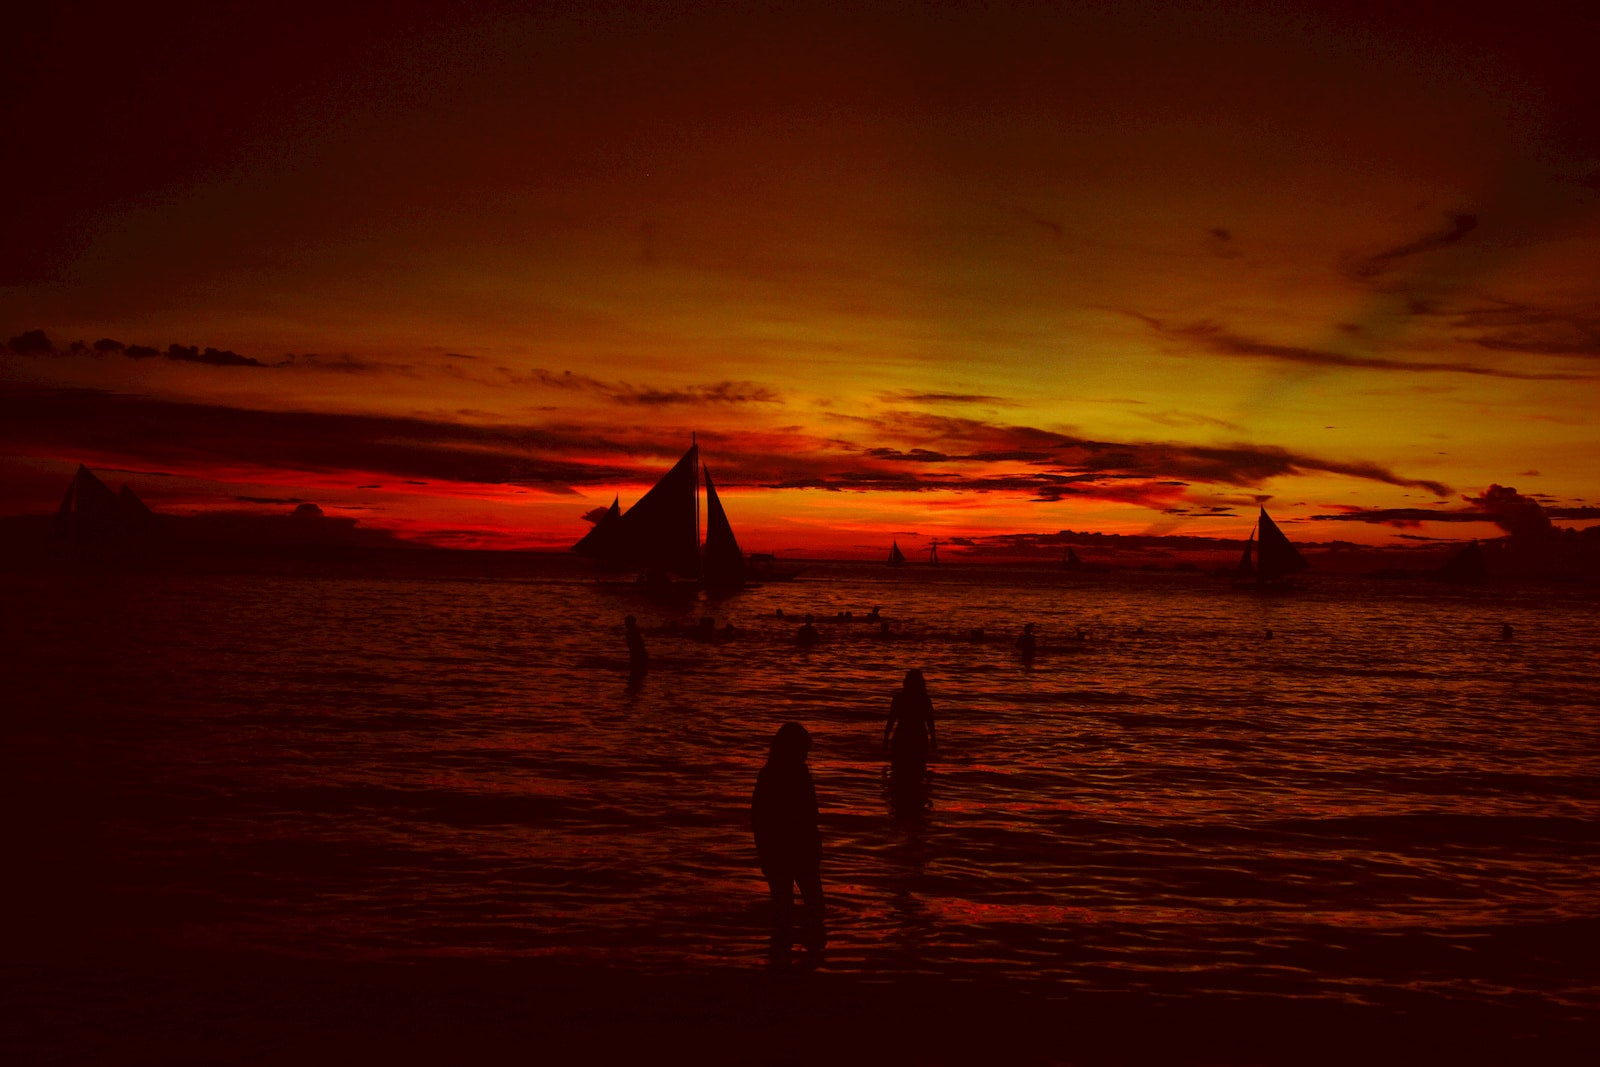 People on the beach overlooking sailboats at sunset.